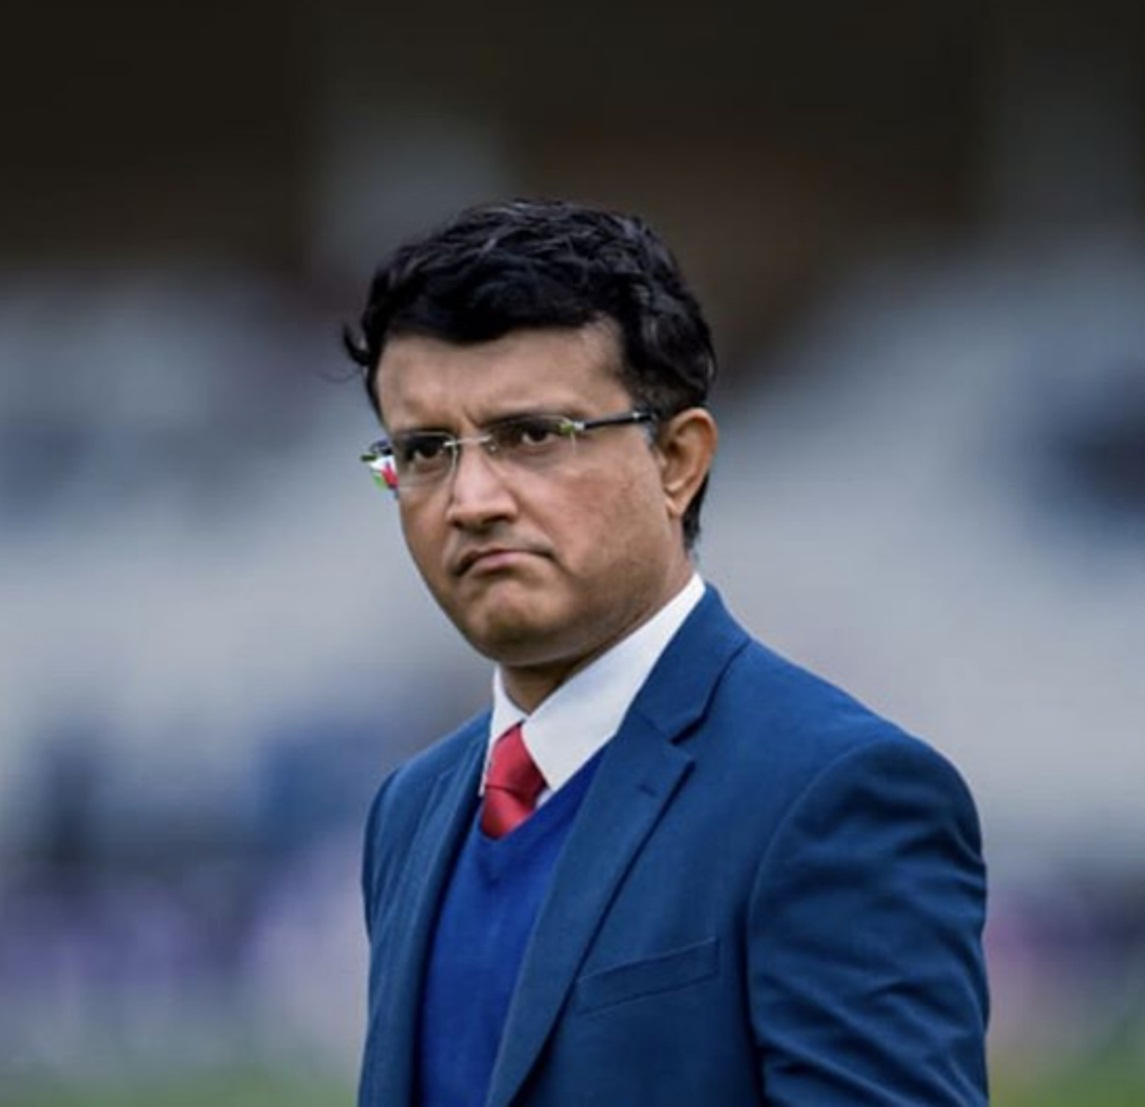 BCCI President Sourav Ganguly. Photo courtesy: Instagram/Sourav Ganguly